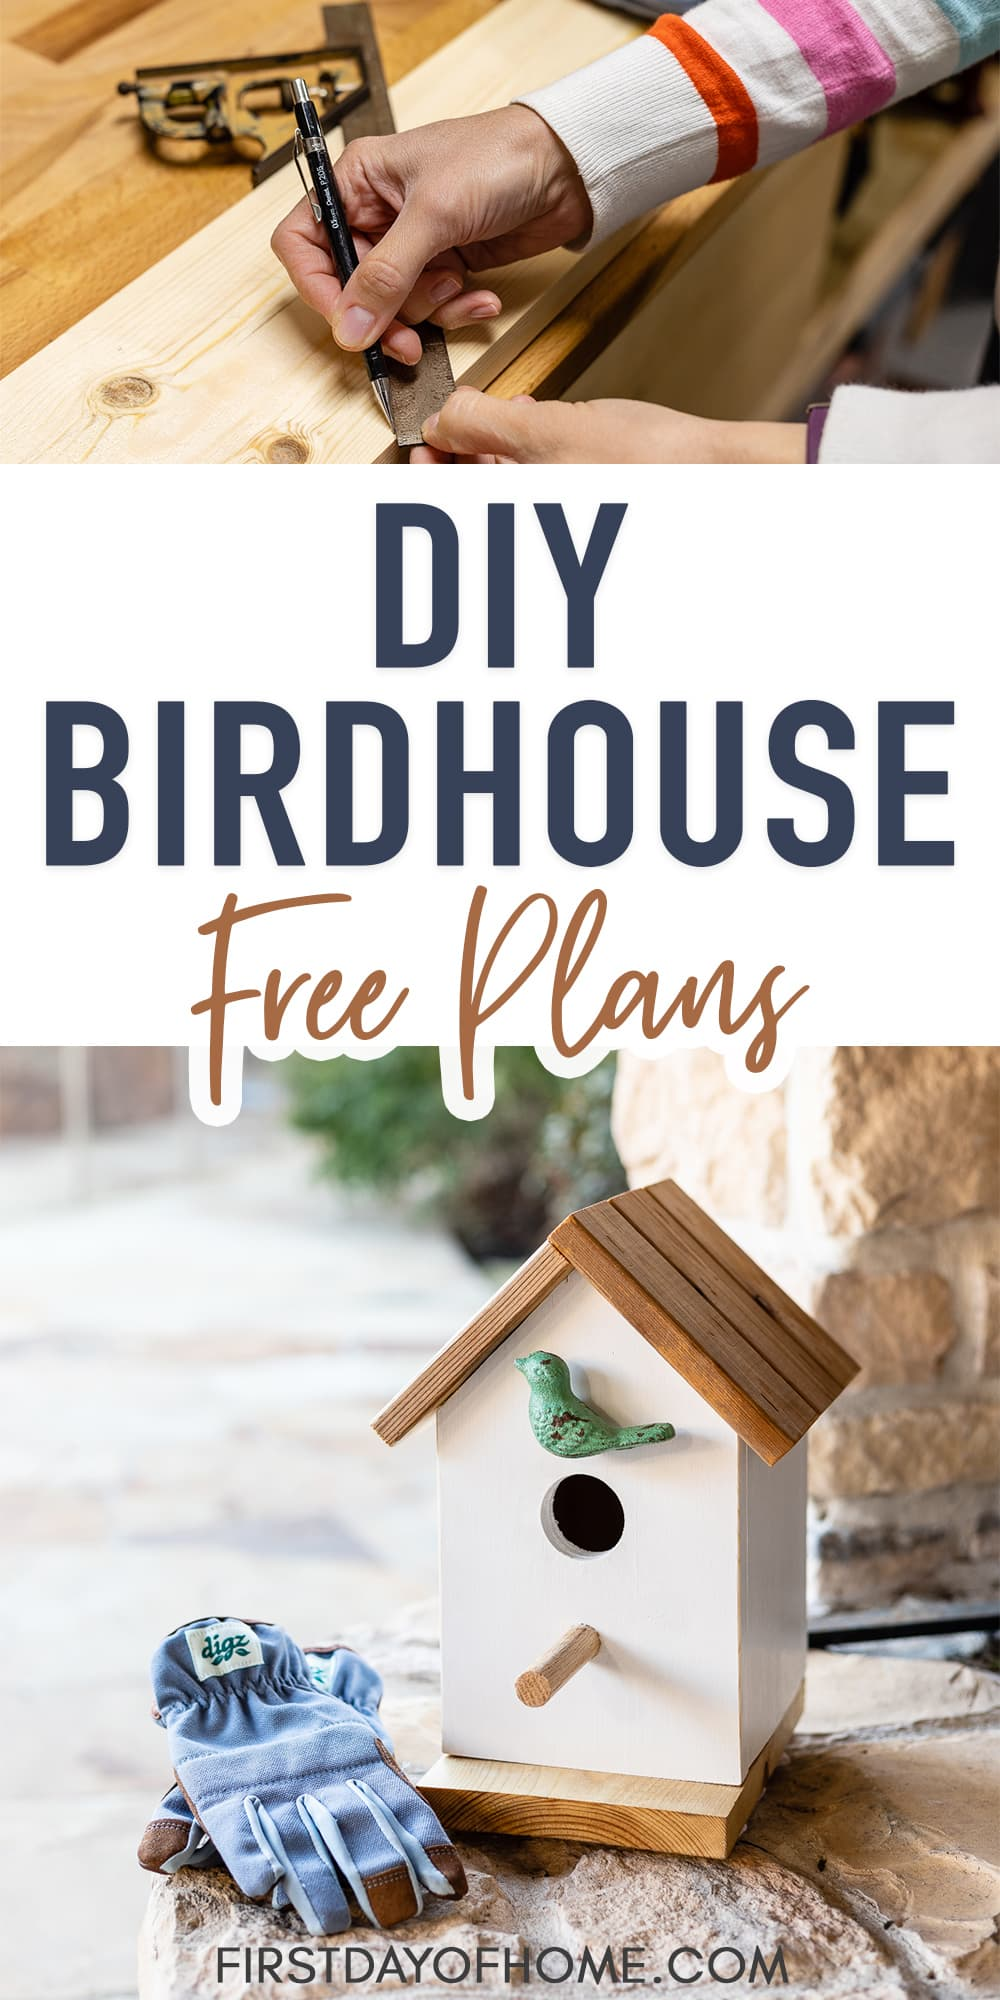 "Homemade birdhouse with steps for building and text overlay reading ""DIY Birdhouse Free Plans"""